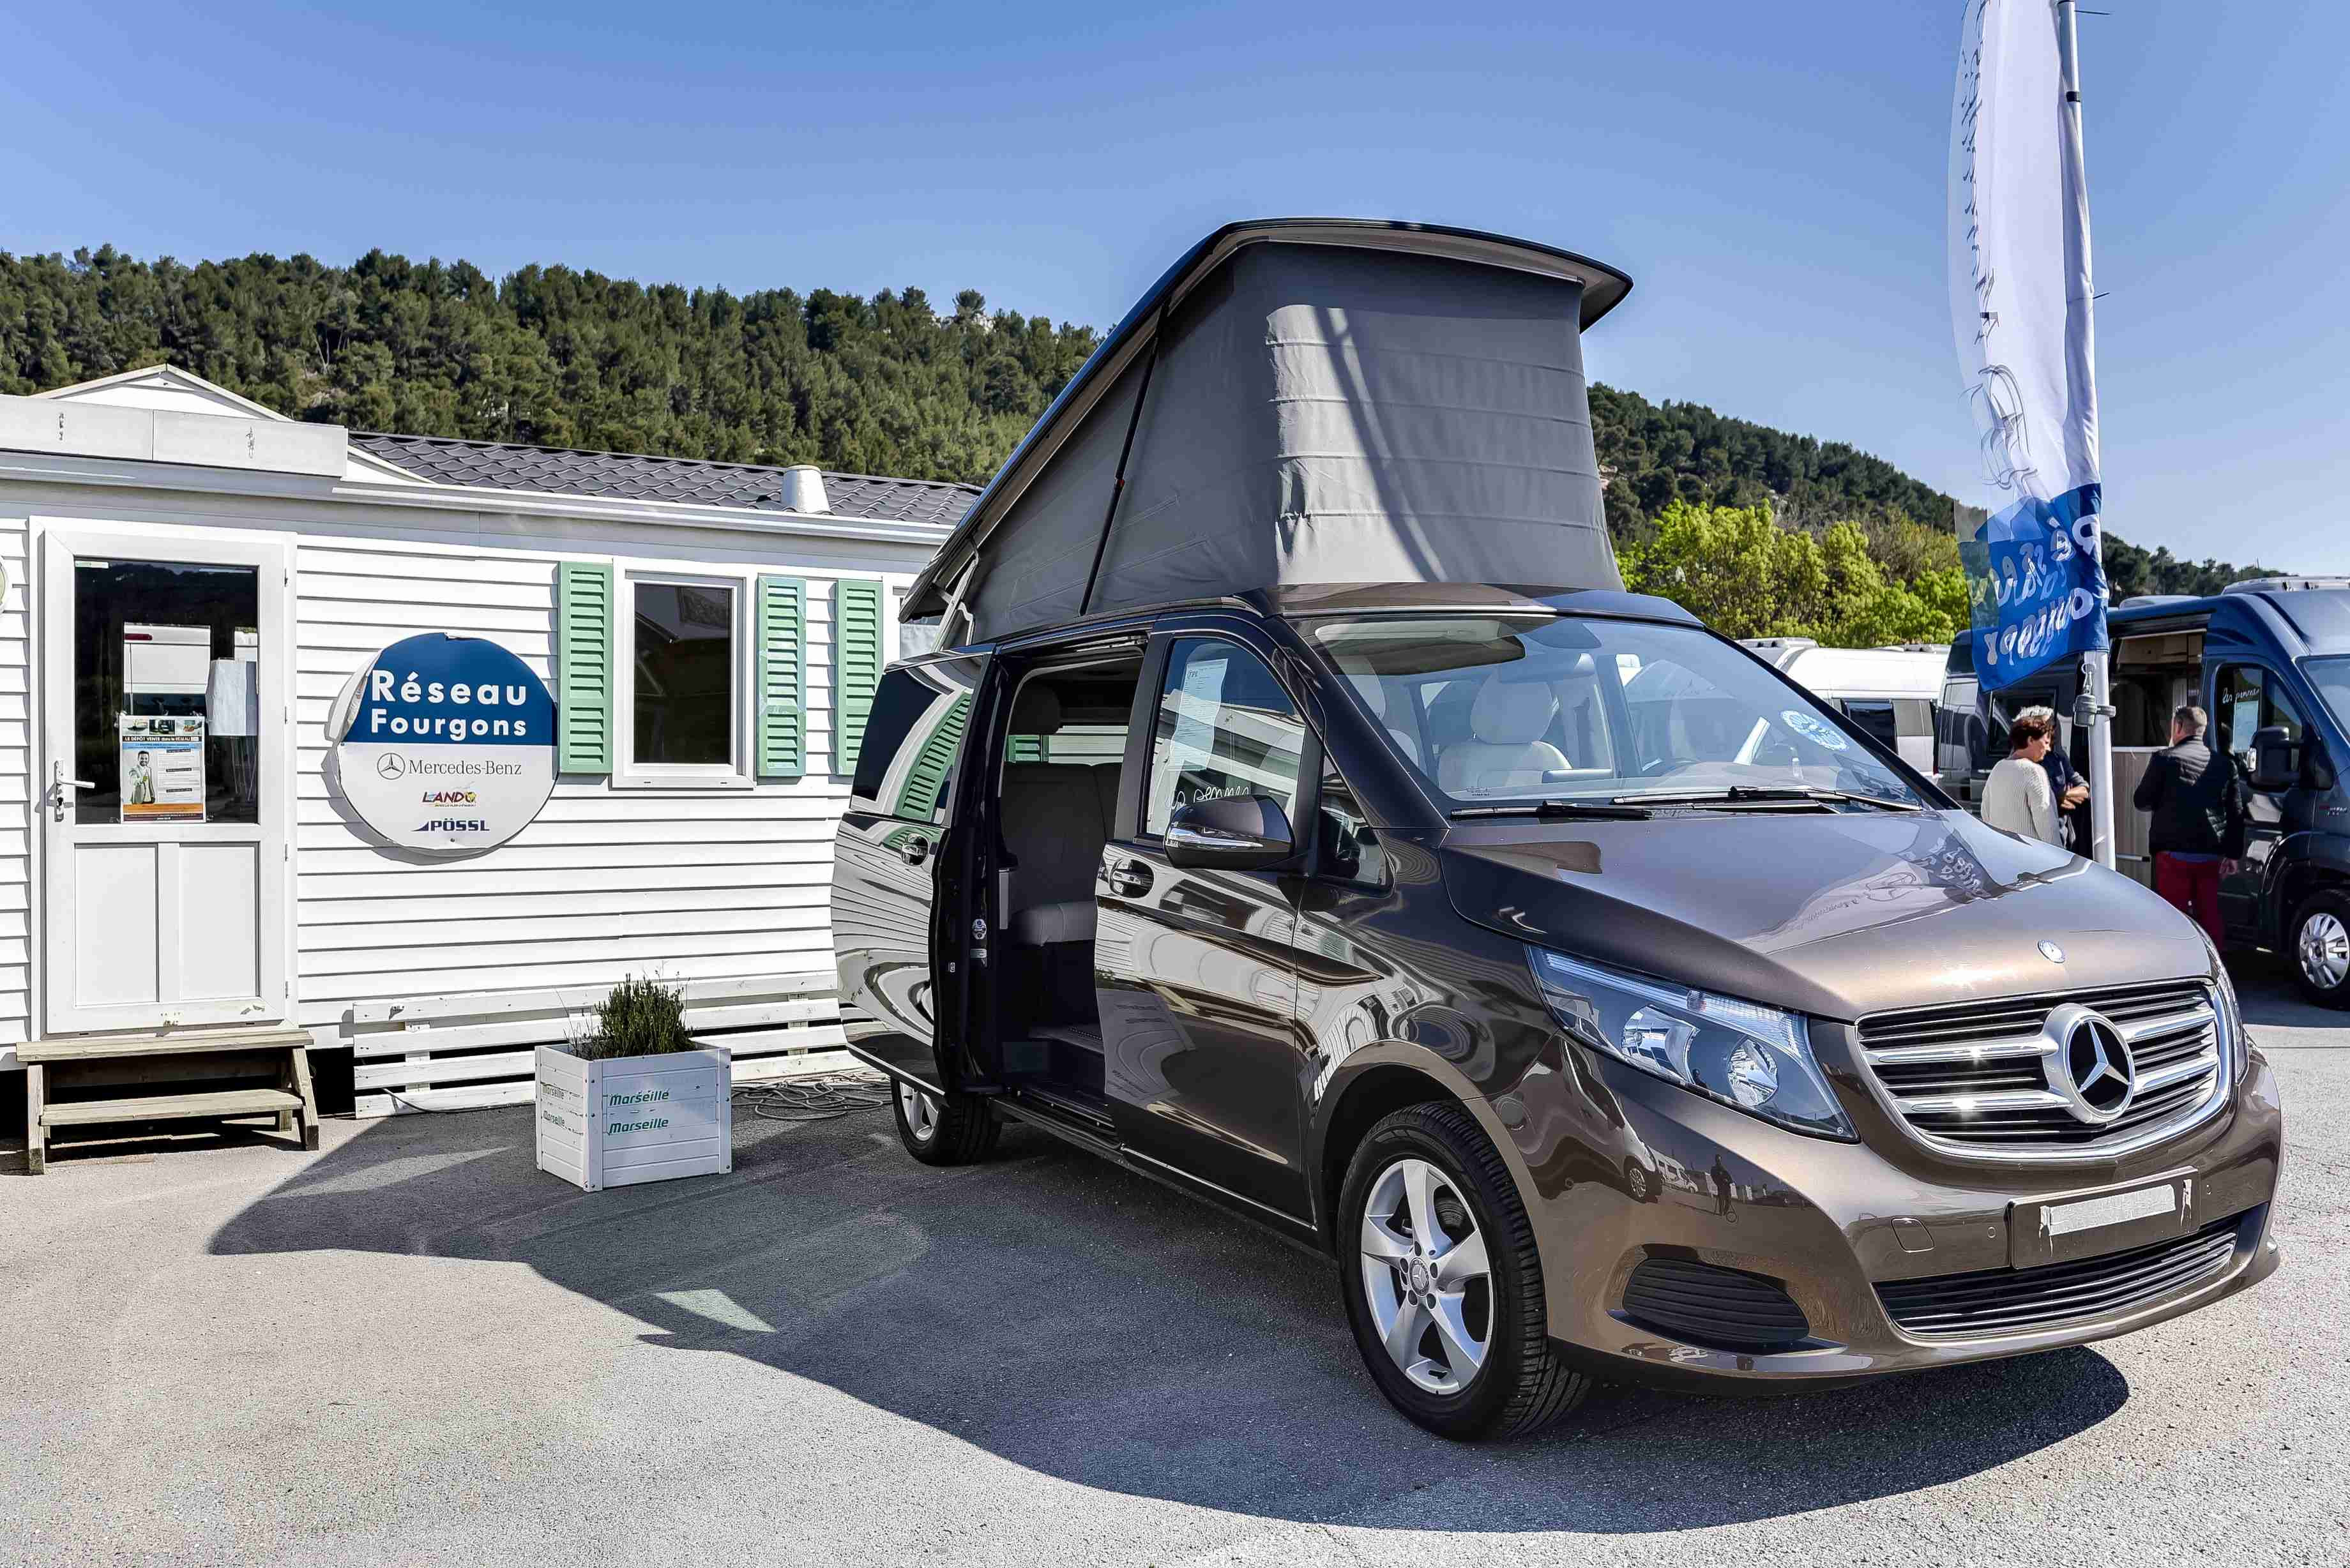 Salon camping car toulouse